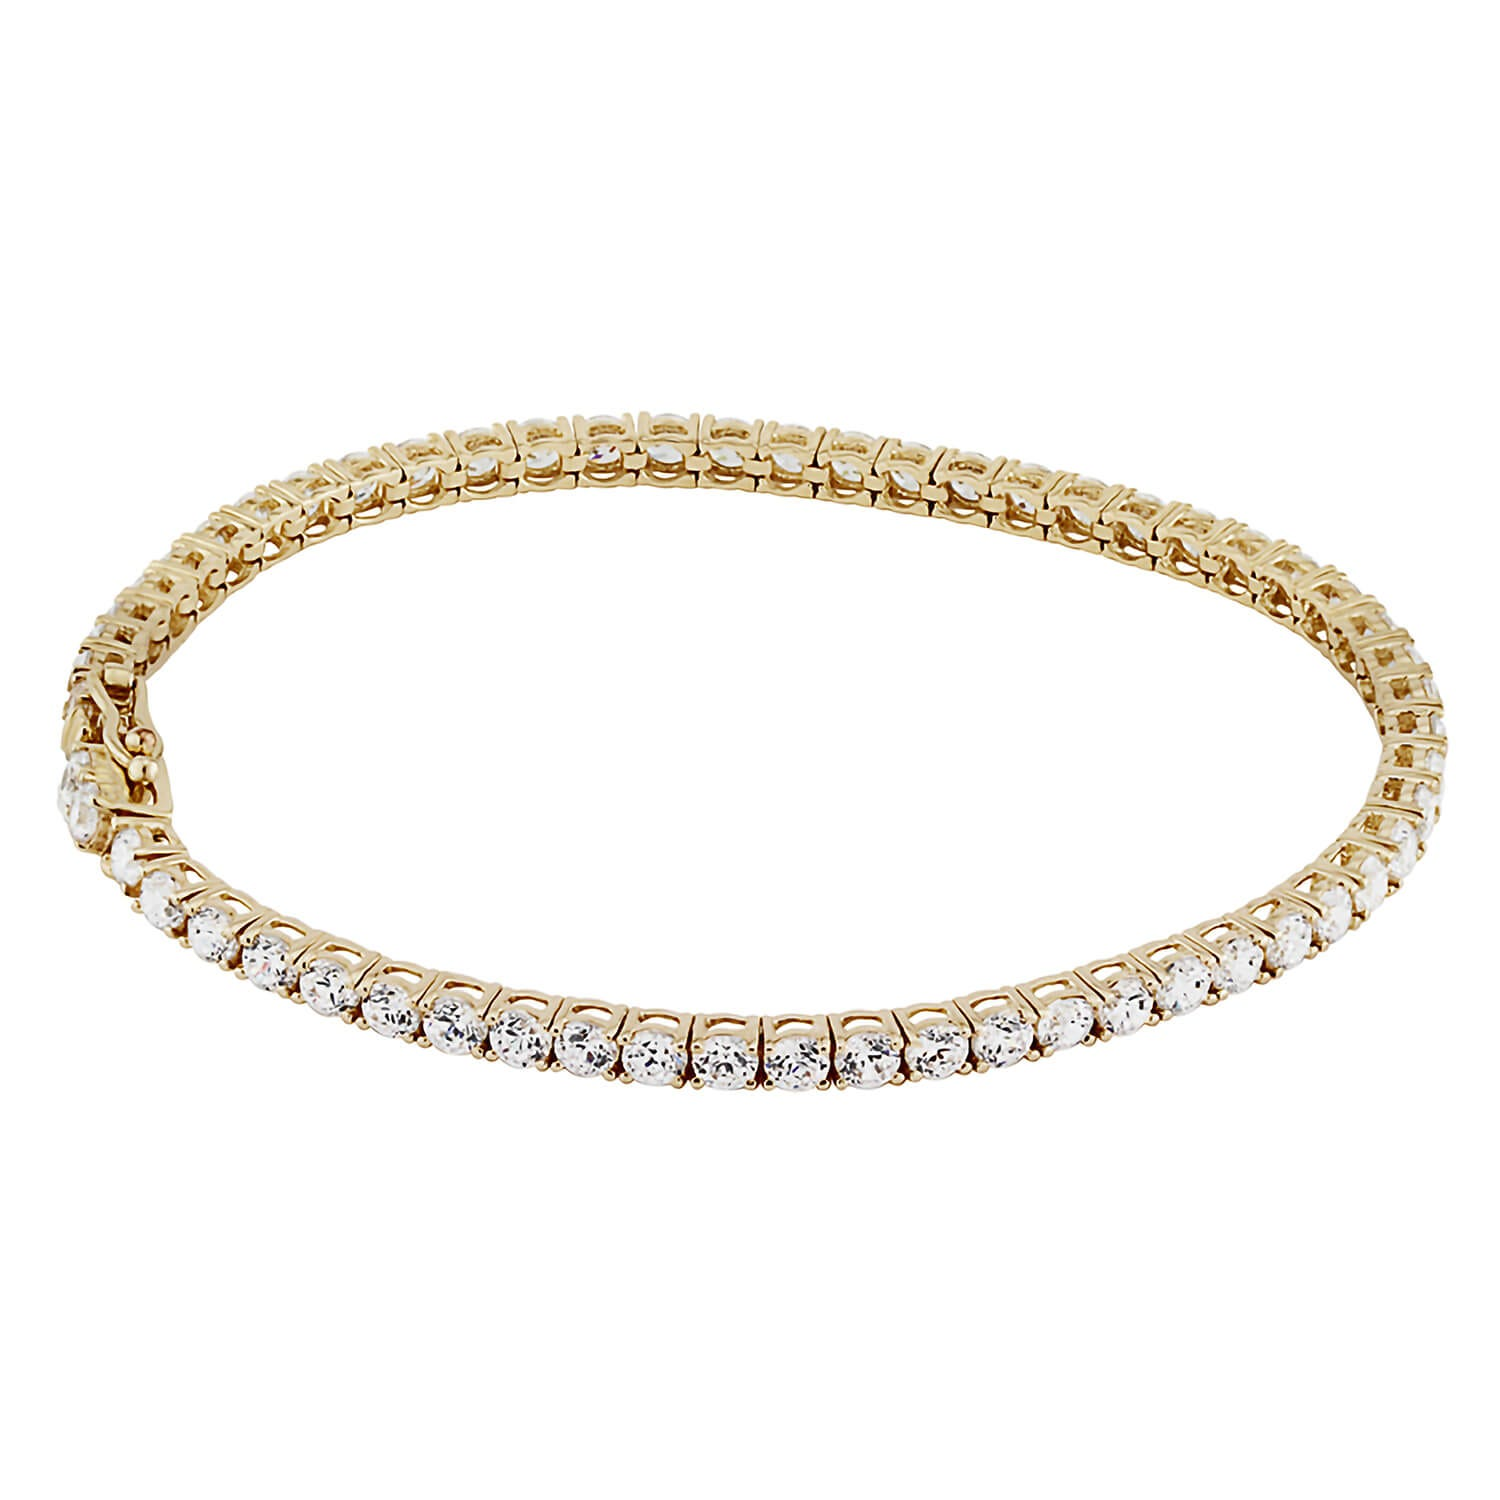 9ct Gold and Cubic Zirconia Bracelet